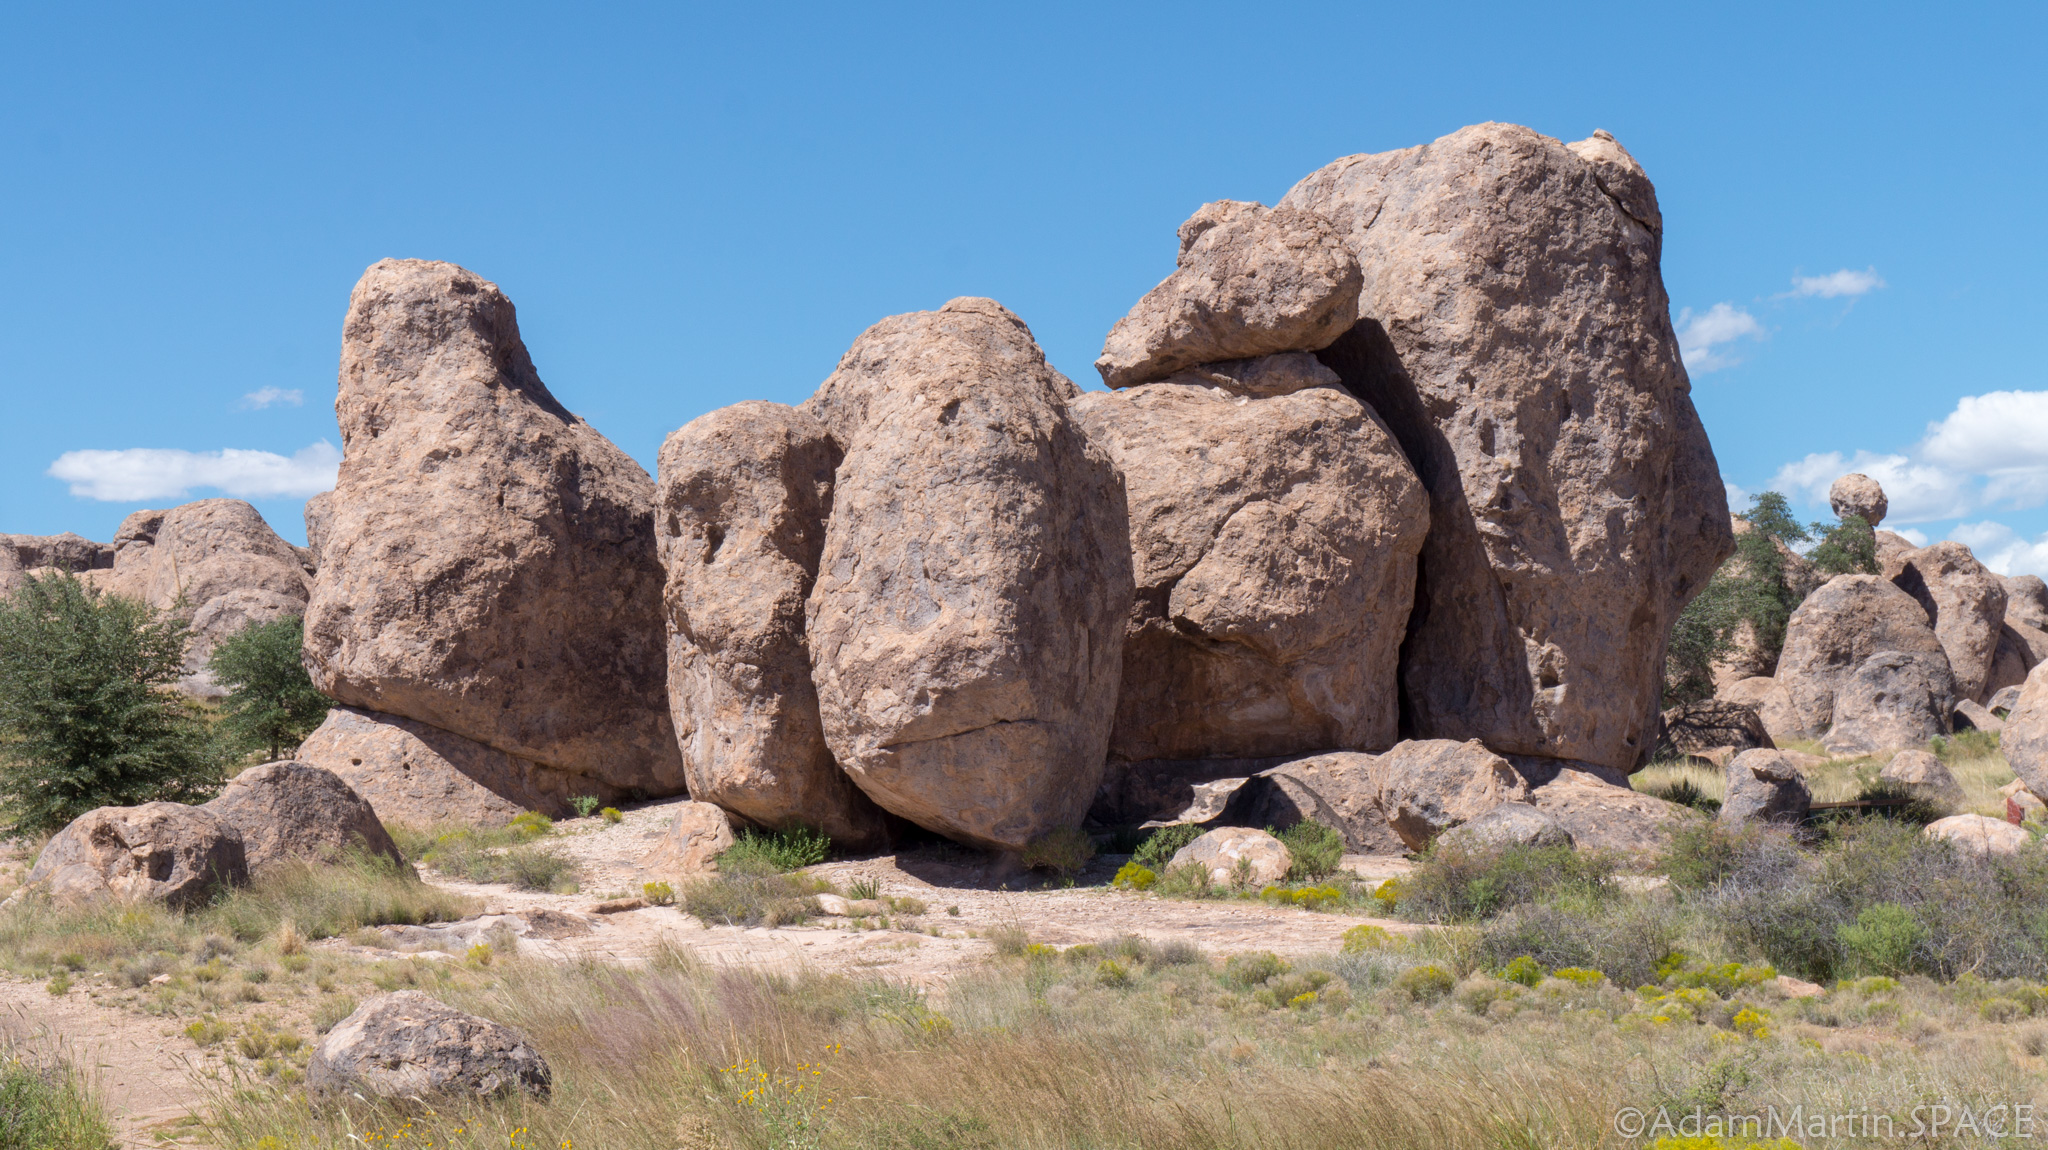 City of Rocks State Park – Rock formations